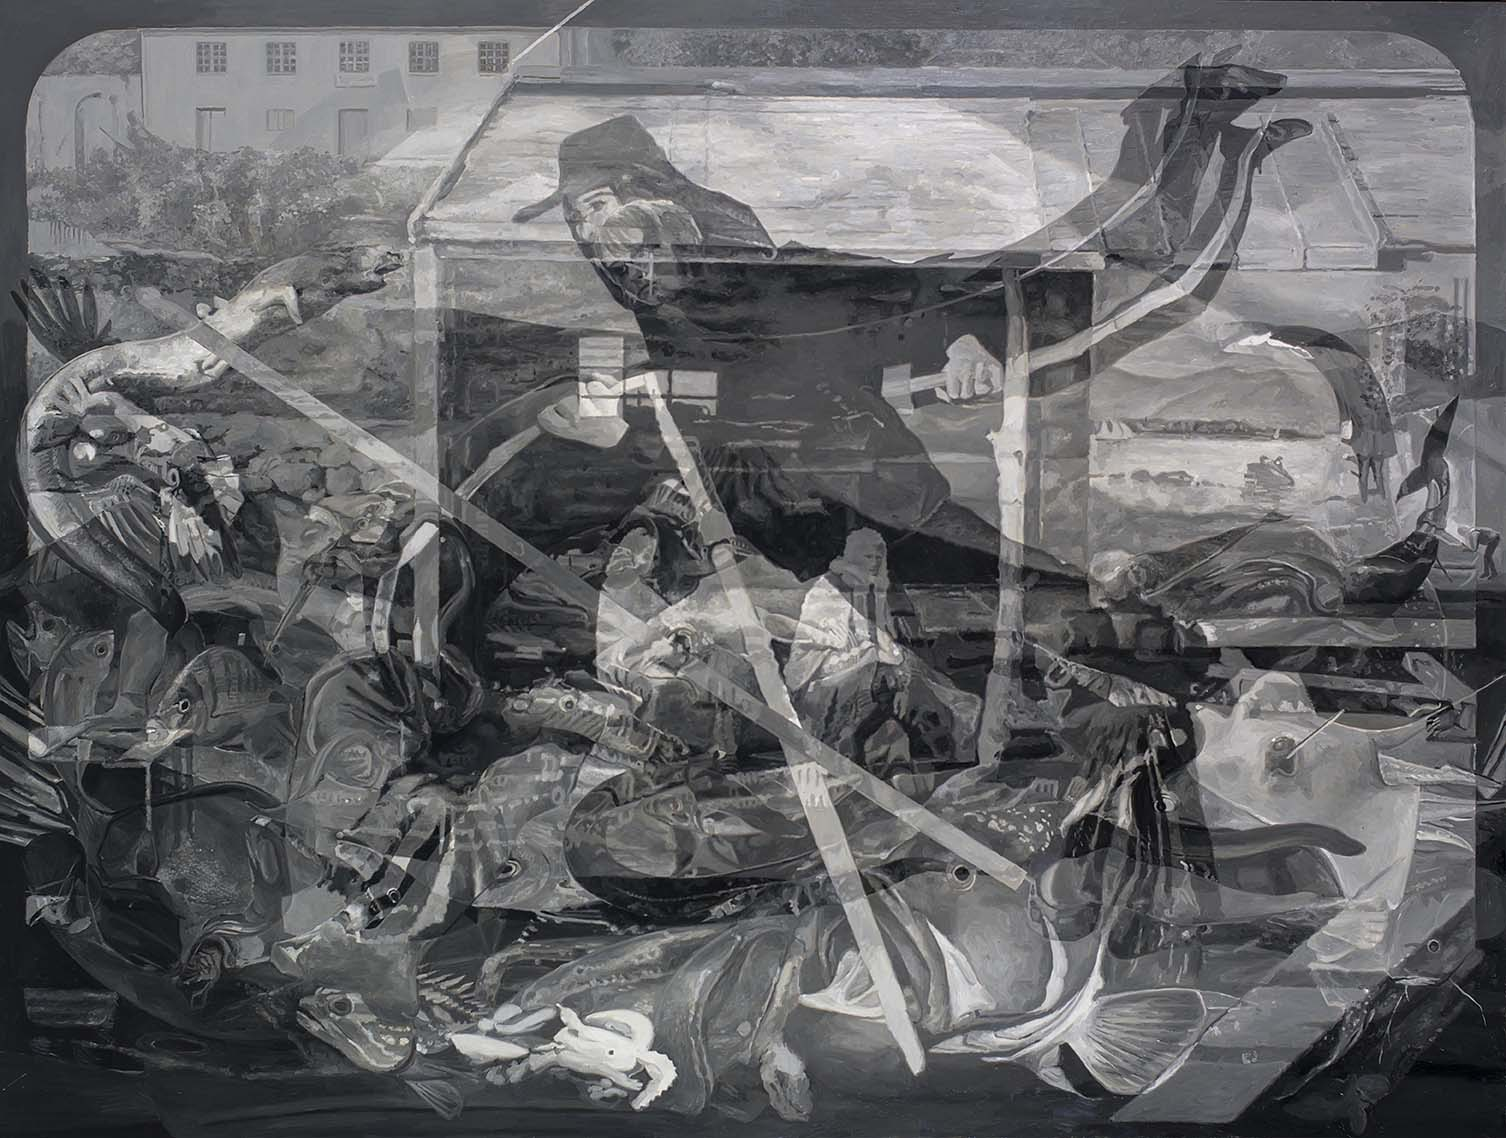 Copy of Antonio Departs Flores on the Whaling Tide, oil on board, 1120 x 160 cm, 2016. Collection Devonport Regional Art Gallery.